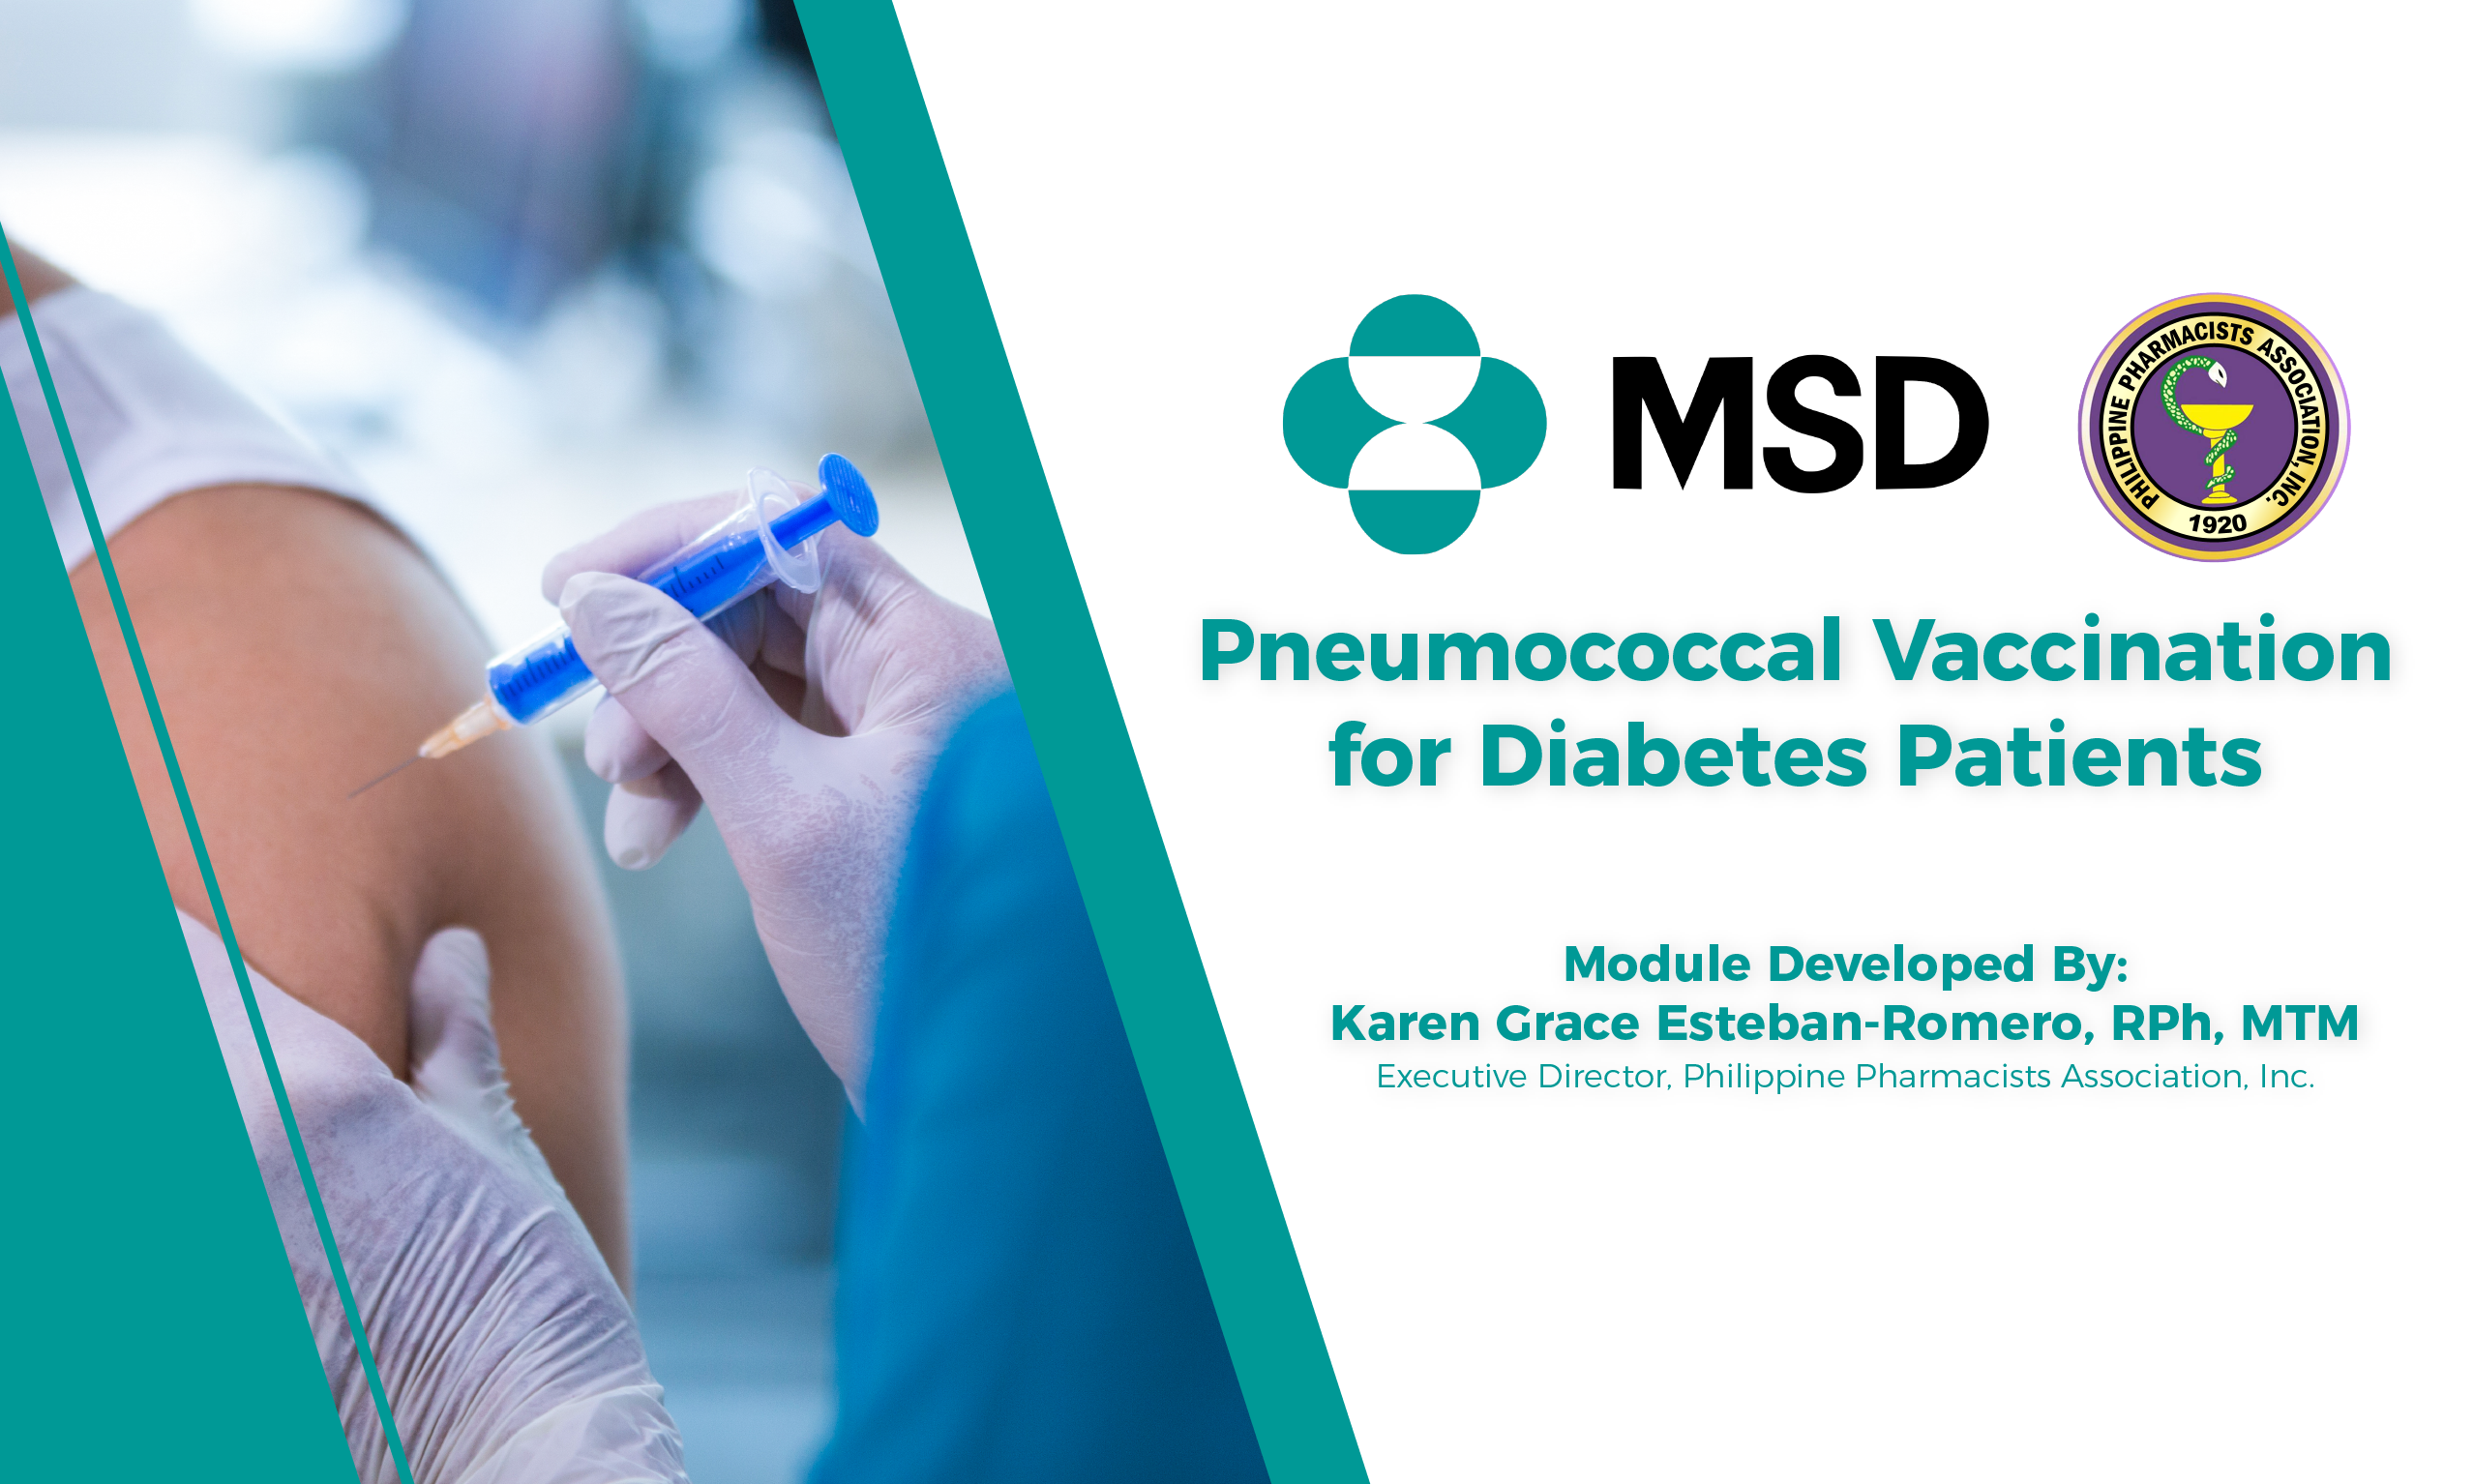 Pneumococcal Vaccination for Diabetes Patients